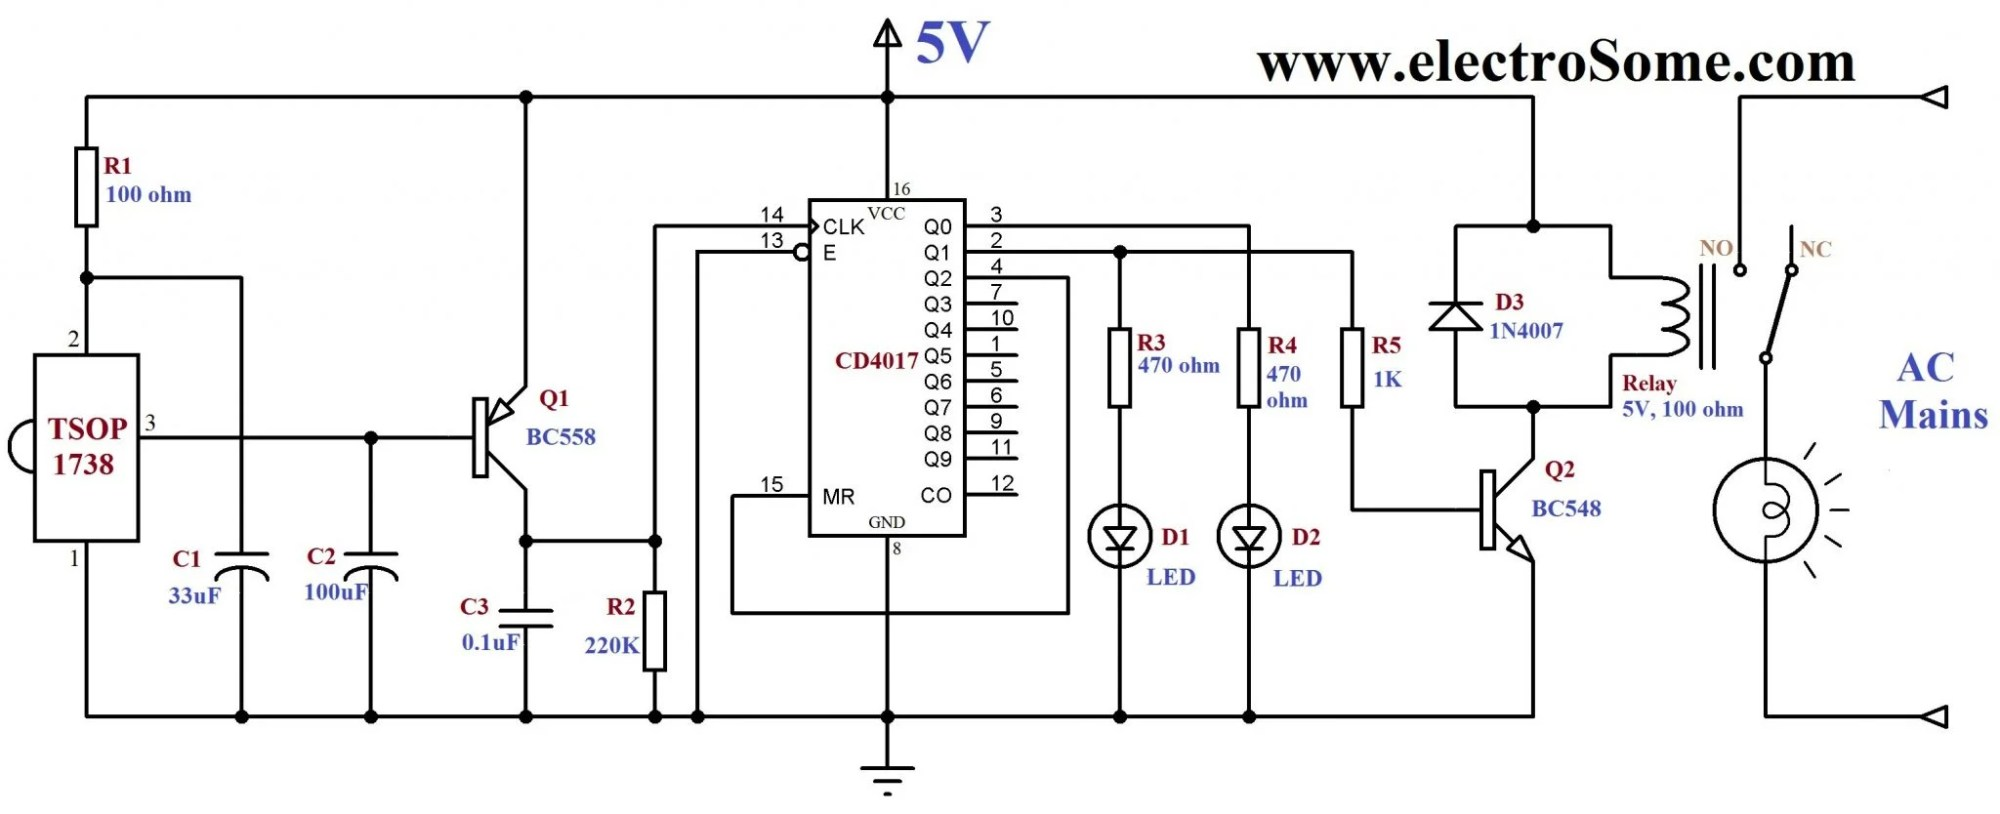 hight resolution of infrared controls wiring diagram wiring diagram infrared home wiring circuit diagram